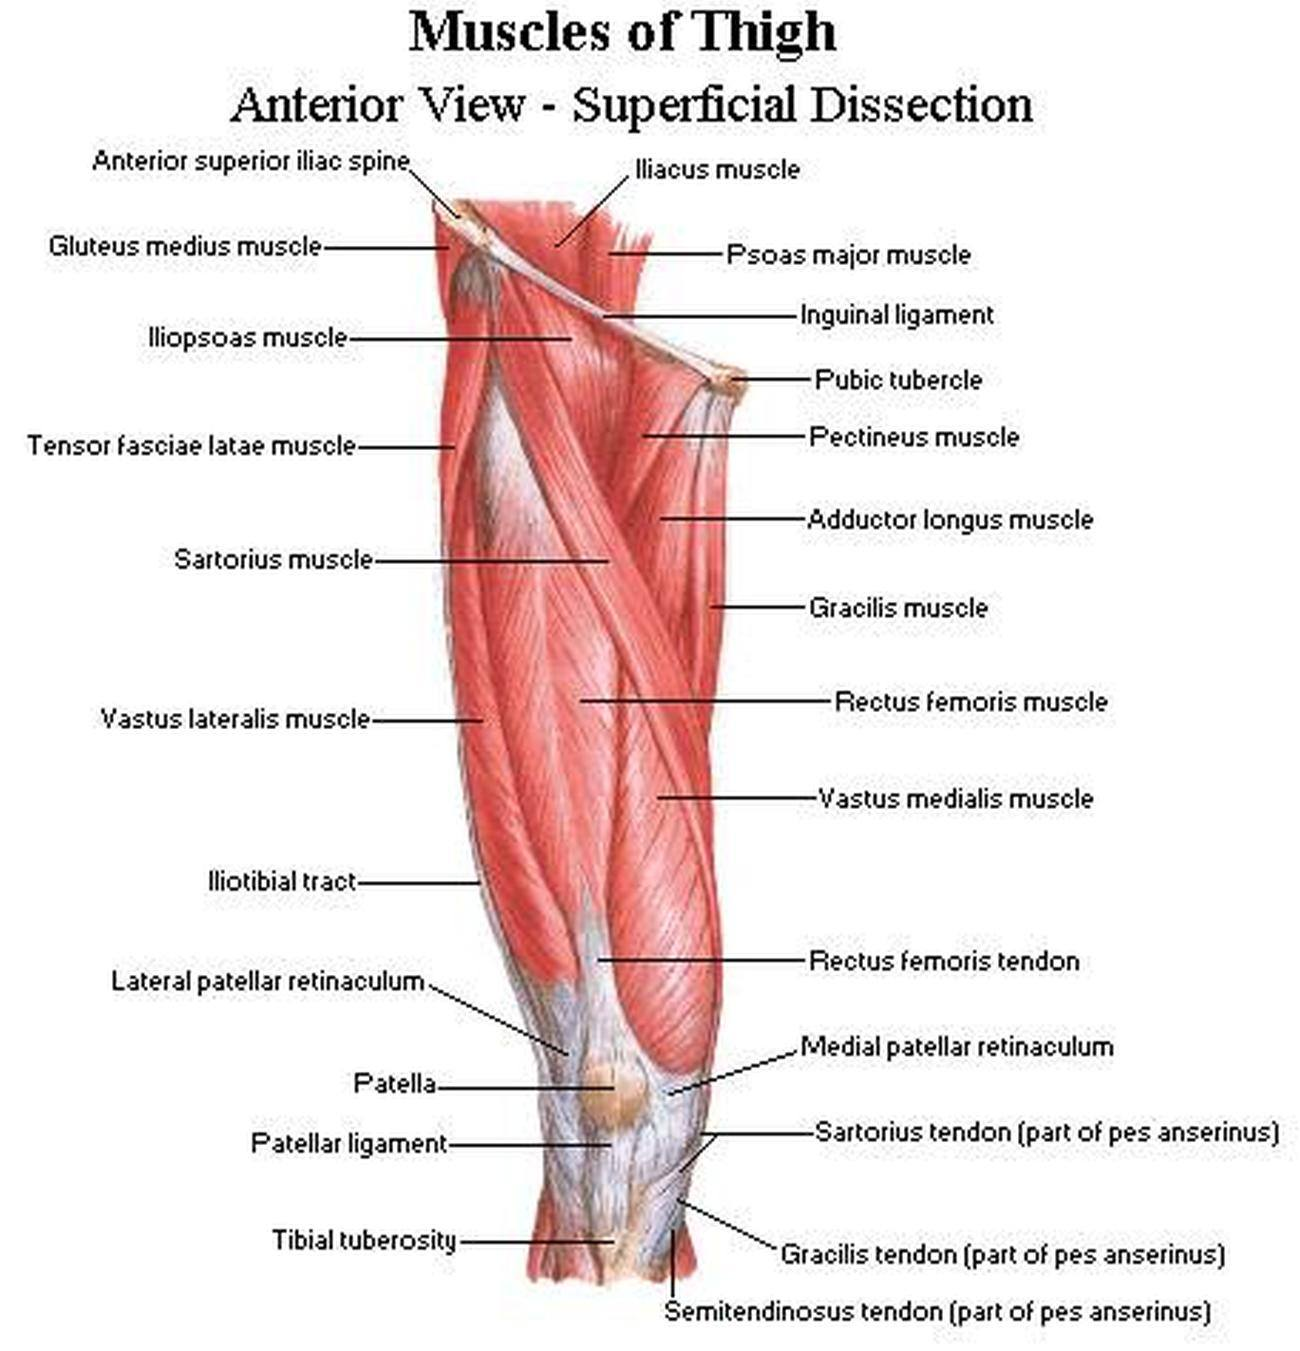 Pictures Of Anterior Thigh Muscleshealthiack